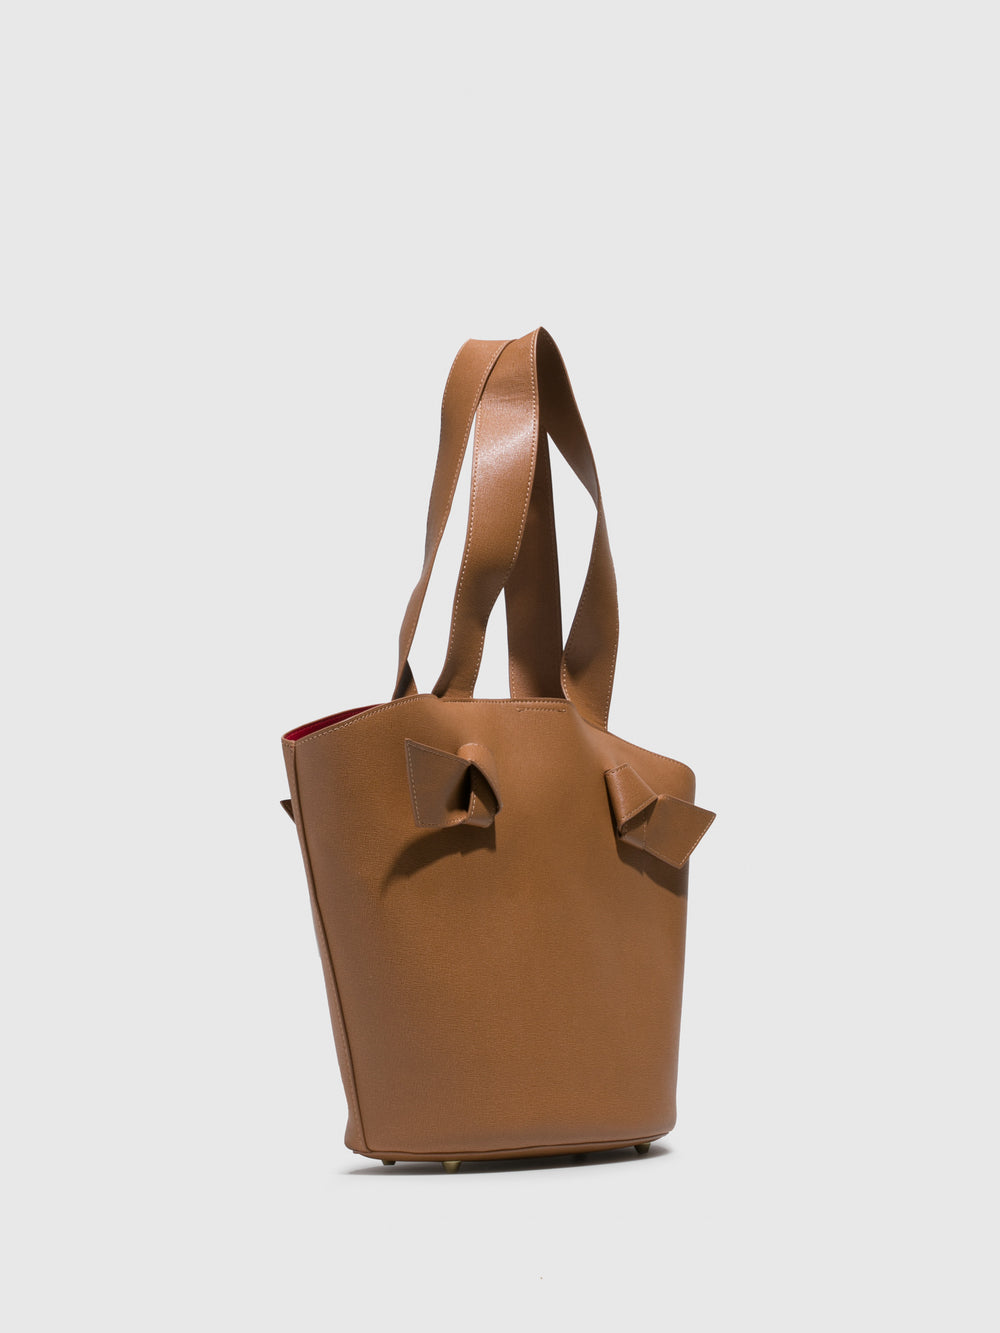 Handbag Bags AMUN701FLY DOYLE BEIGE/RED